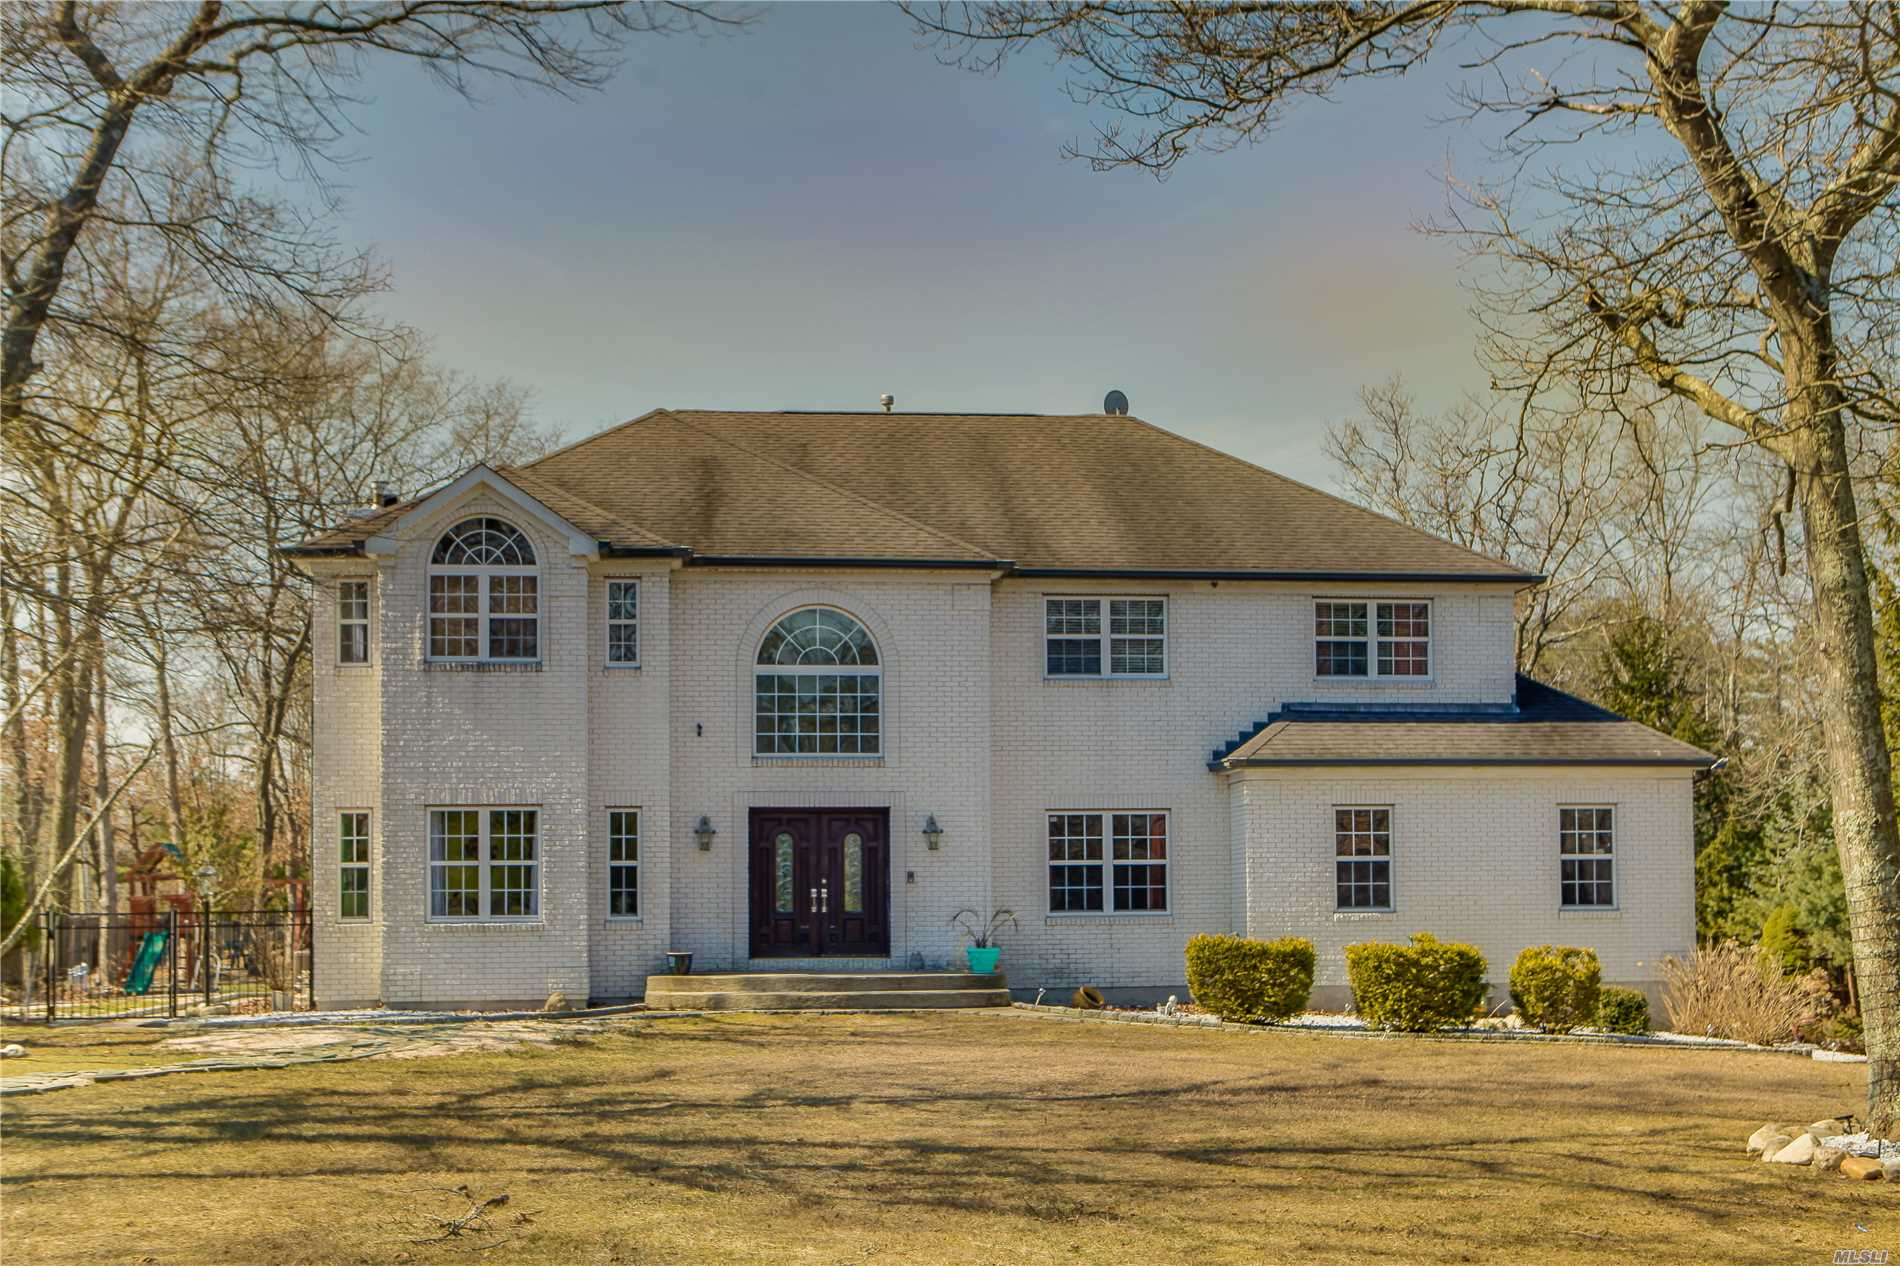 Huge luxurious colonial situated on 2/3 acre resort-like property in the private Horizon at the Hamlet. Featuring gleaming hard wood floors, gourmet EIK, Frml Dr, sunken LR W/ fireplace, Exquisite master bdrm with en suite bath and double WICs, double height open foyer, attached 2 car garage, second large MBR option for 1st floor, custom trim & detail work throughout, large Finished lower level/Basement With 2 outside entrances and possibility for M/D if permits obtained. Convenient to parkways.